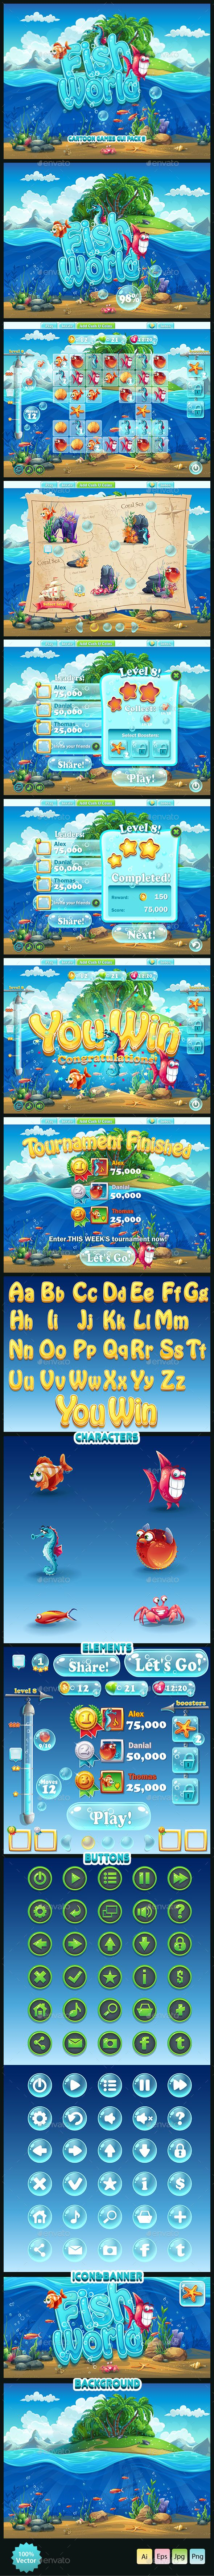 Fish world - GUI pack 9 - User Interfaces #Game #Assets | Download http://graphicriver.net/item/fish-world-gui-pack-9/13272177?ref=sinzo